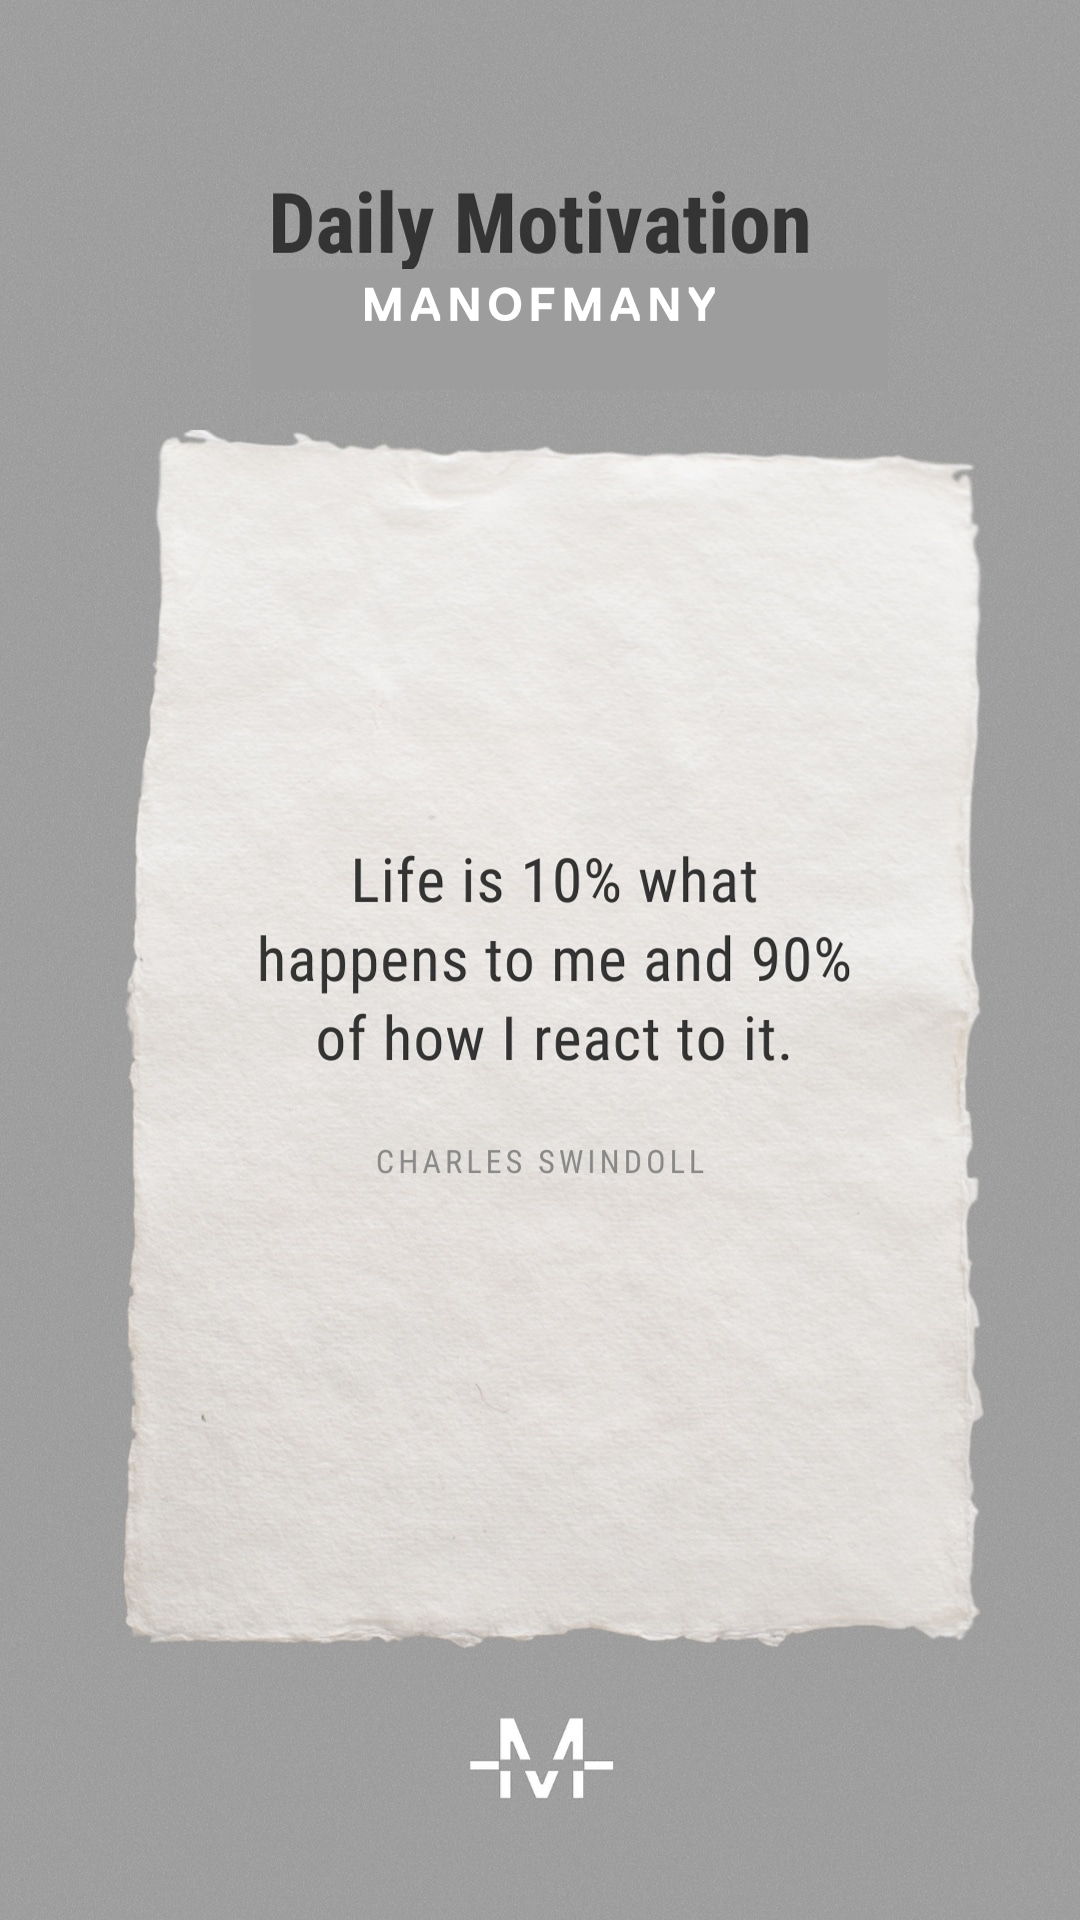 Life is 10% what happens to me and 90% of how I react to it. –Charles Swindoll quote